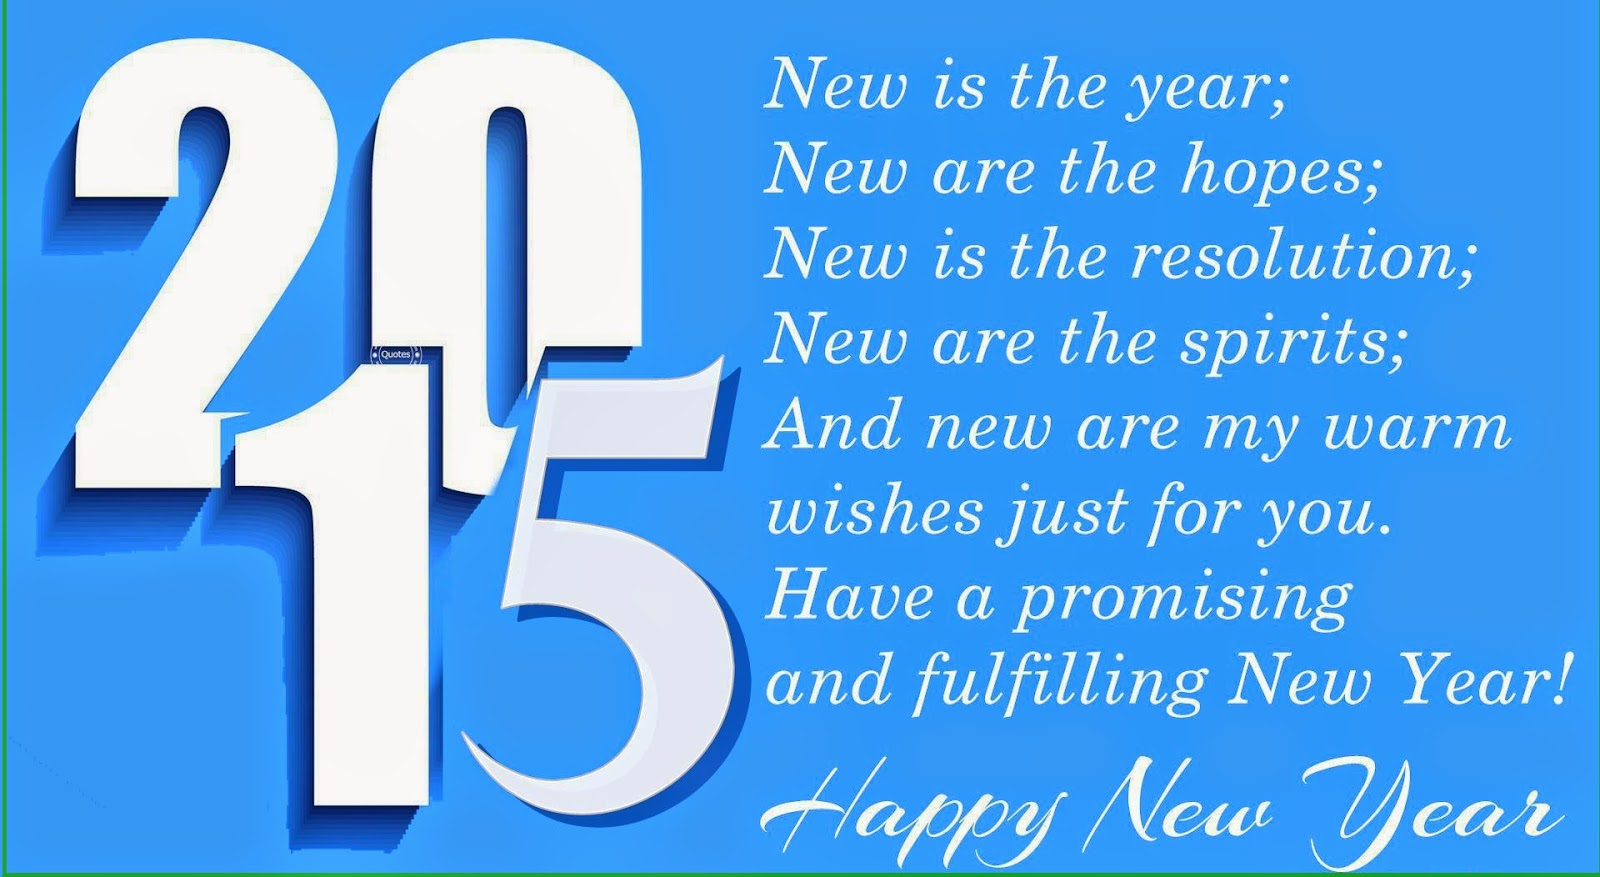 Happy New Year 2015 Greeting Cards For Free Download Happy New